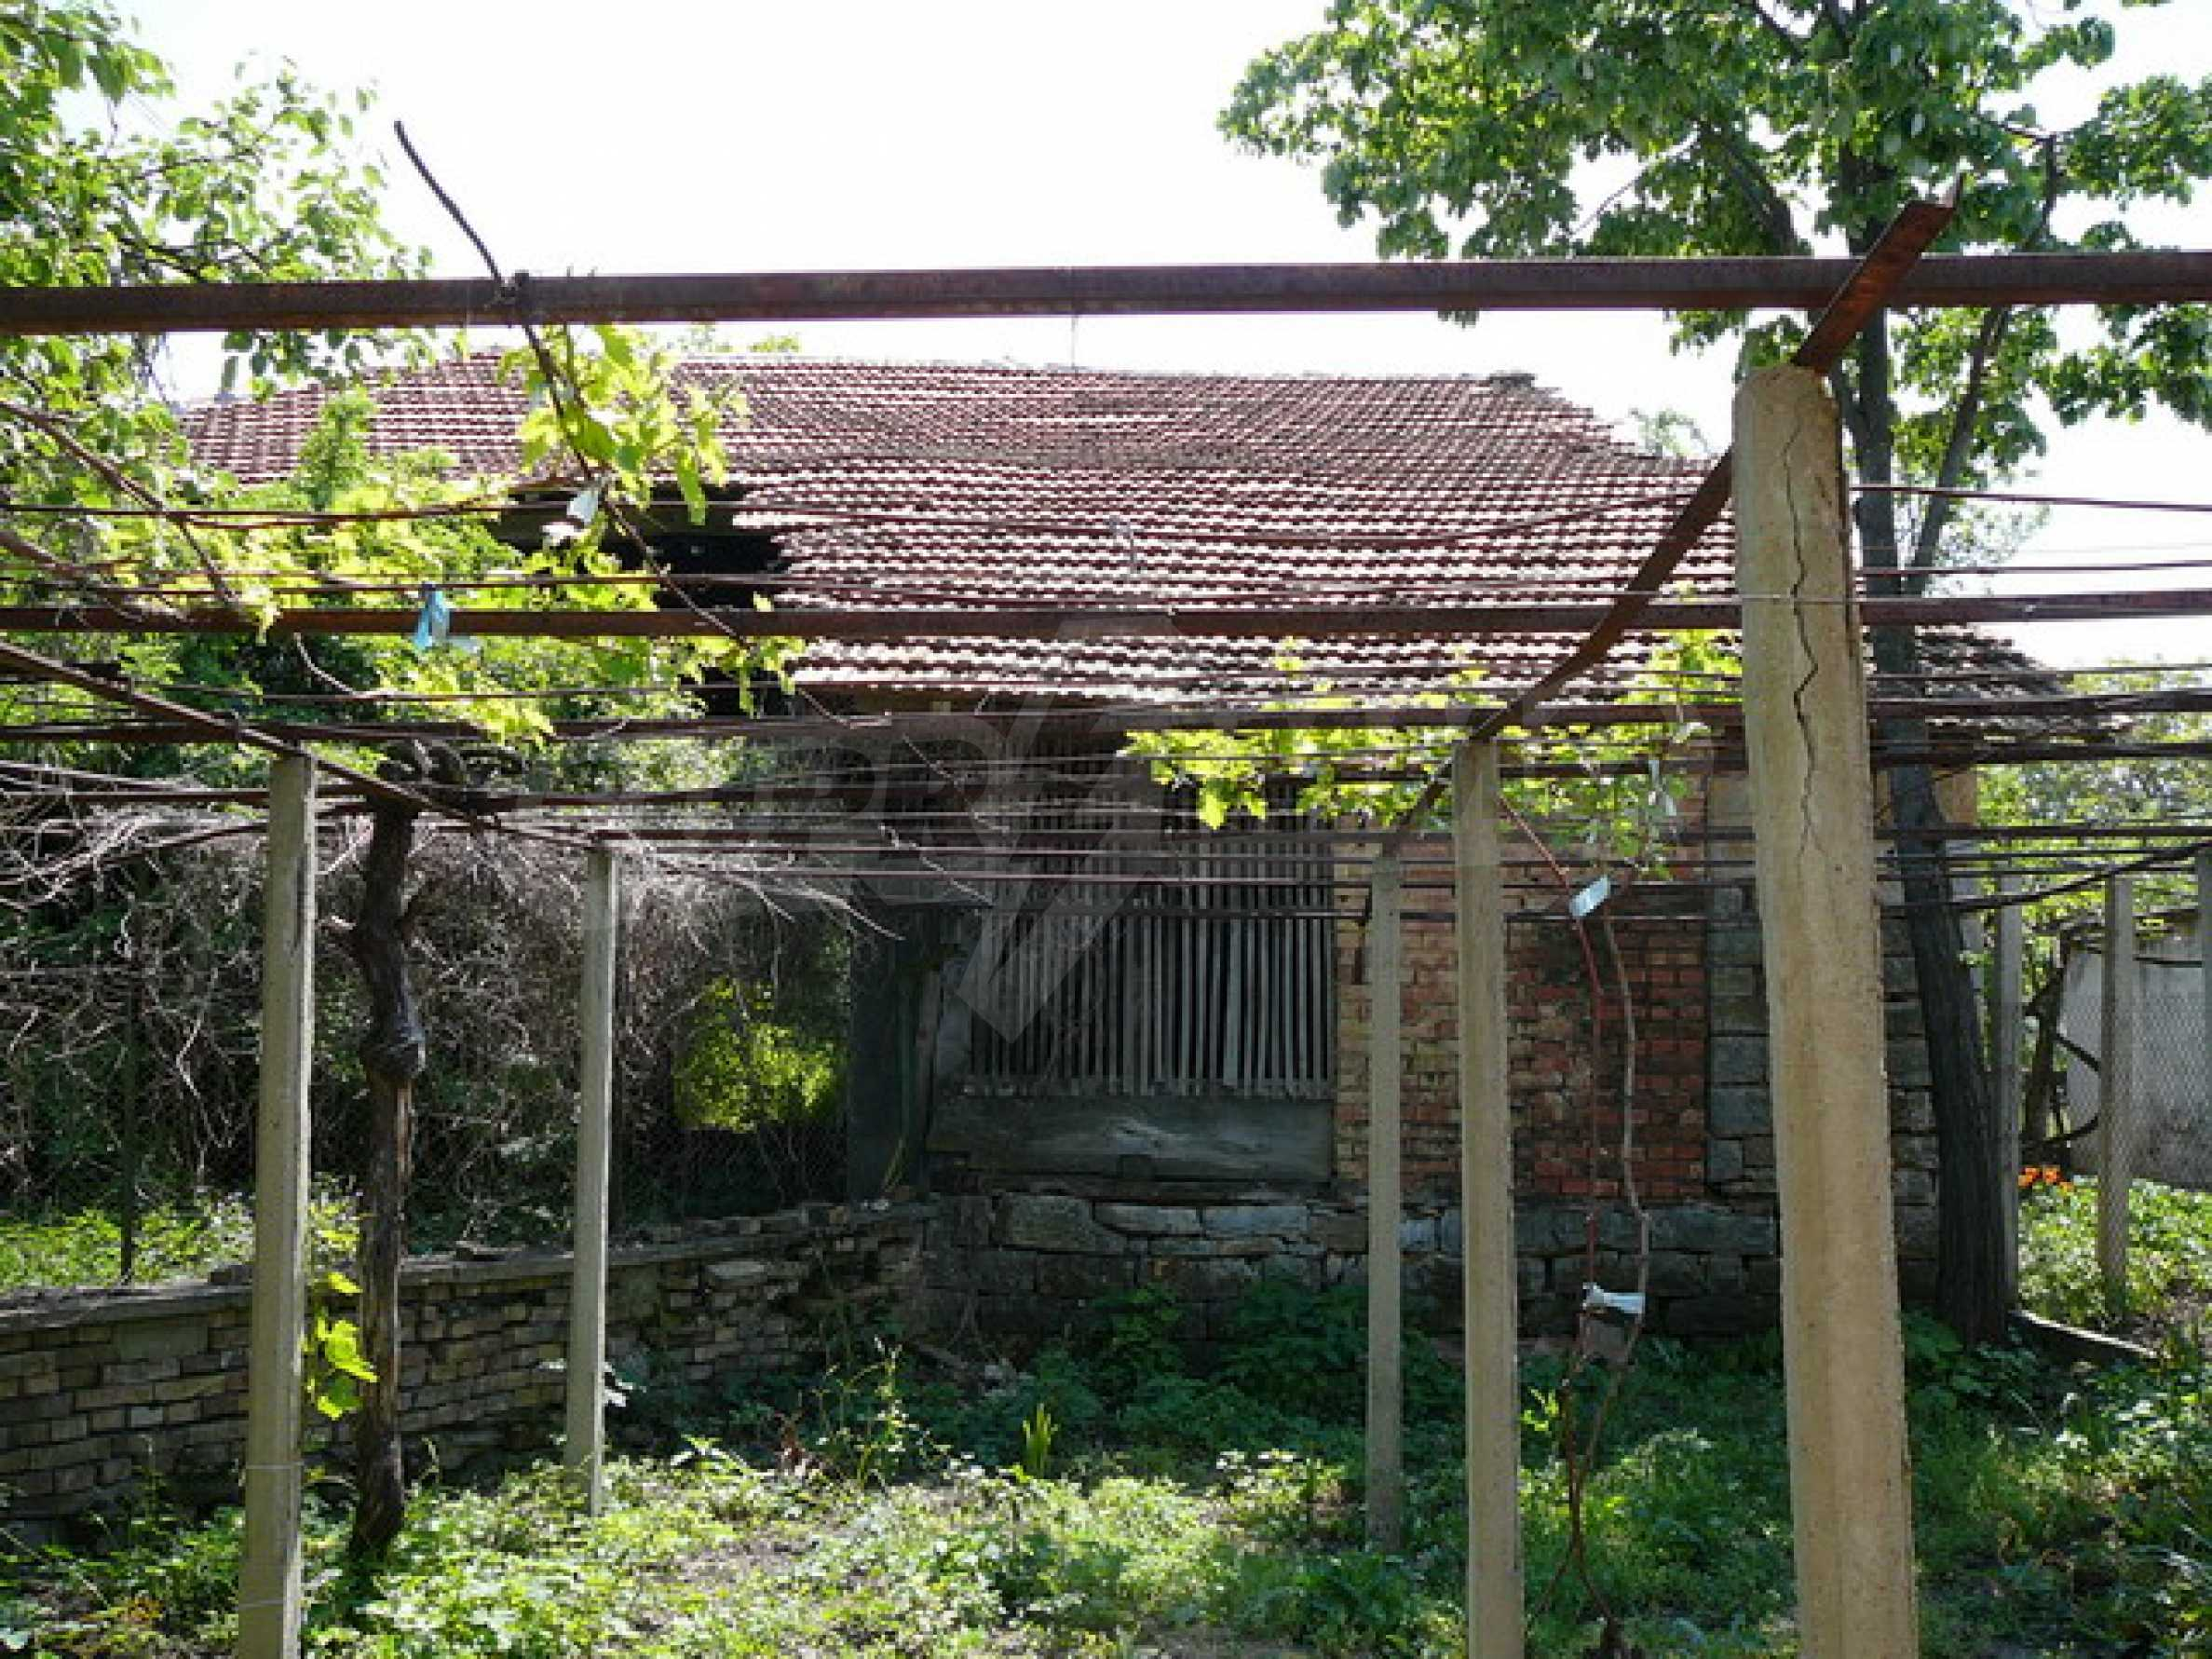 House for sale in a village close to Veliko Tarnovo 19